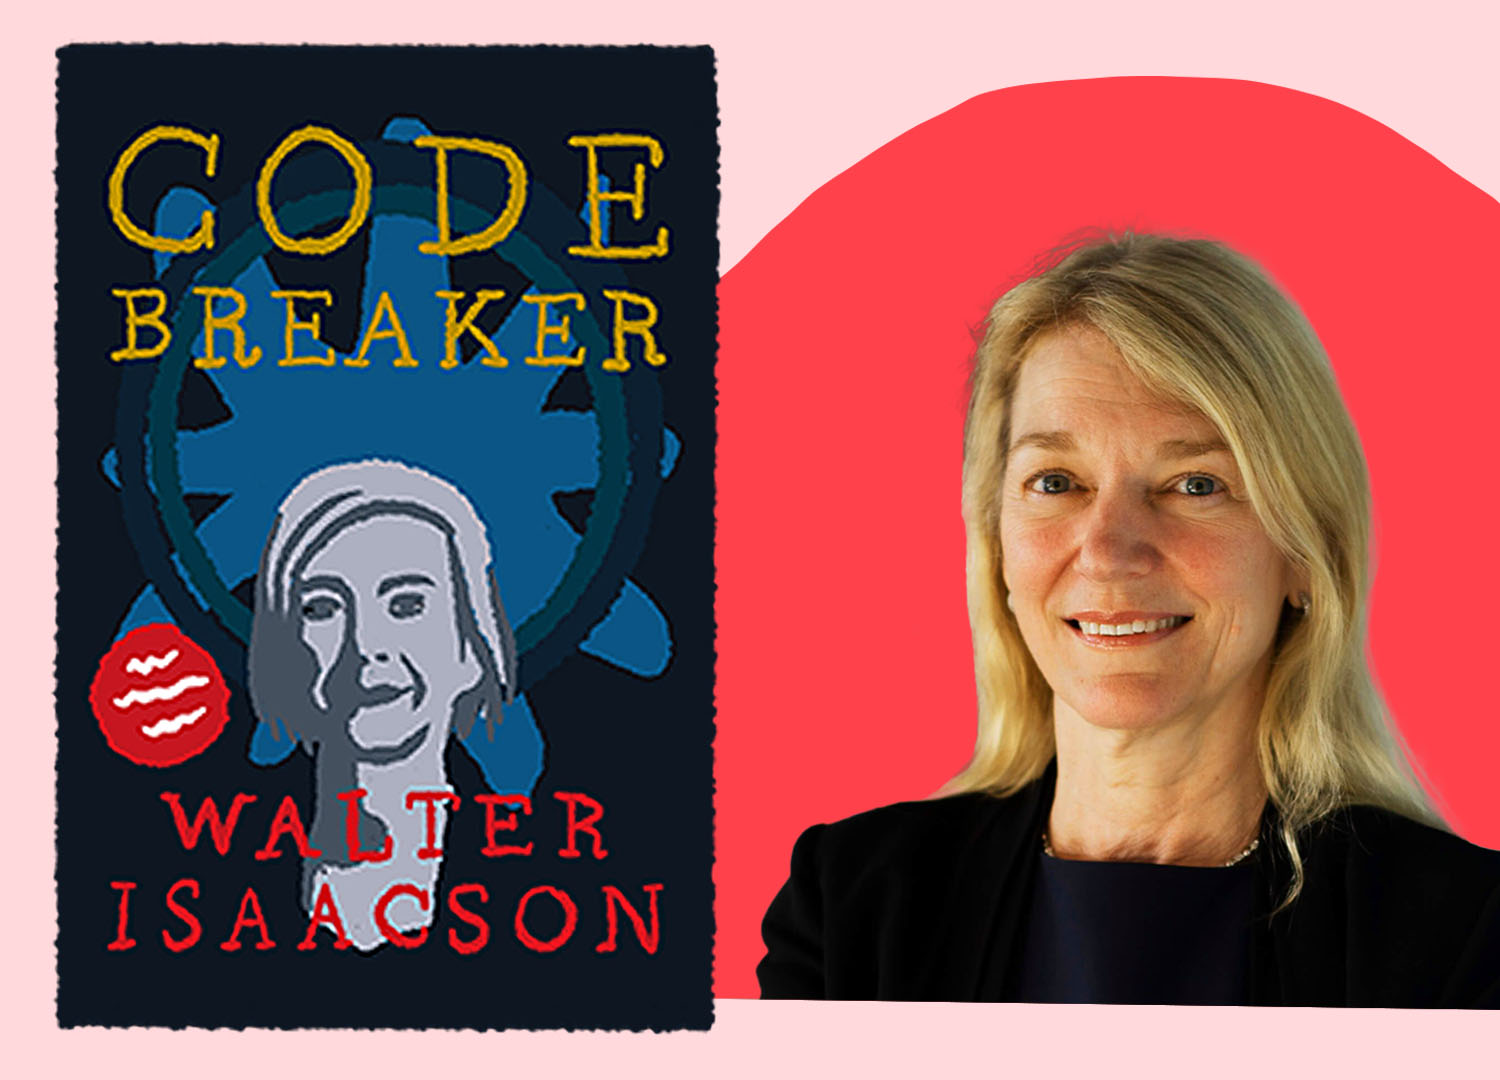 A woman smiles and is pictured next to an illustration of the book Code Breaker.